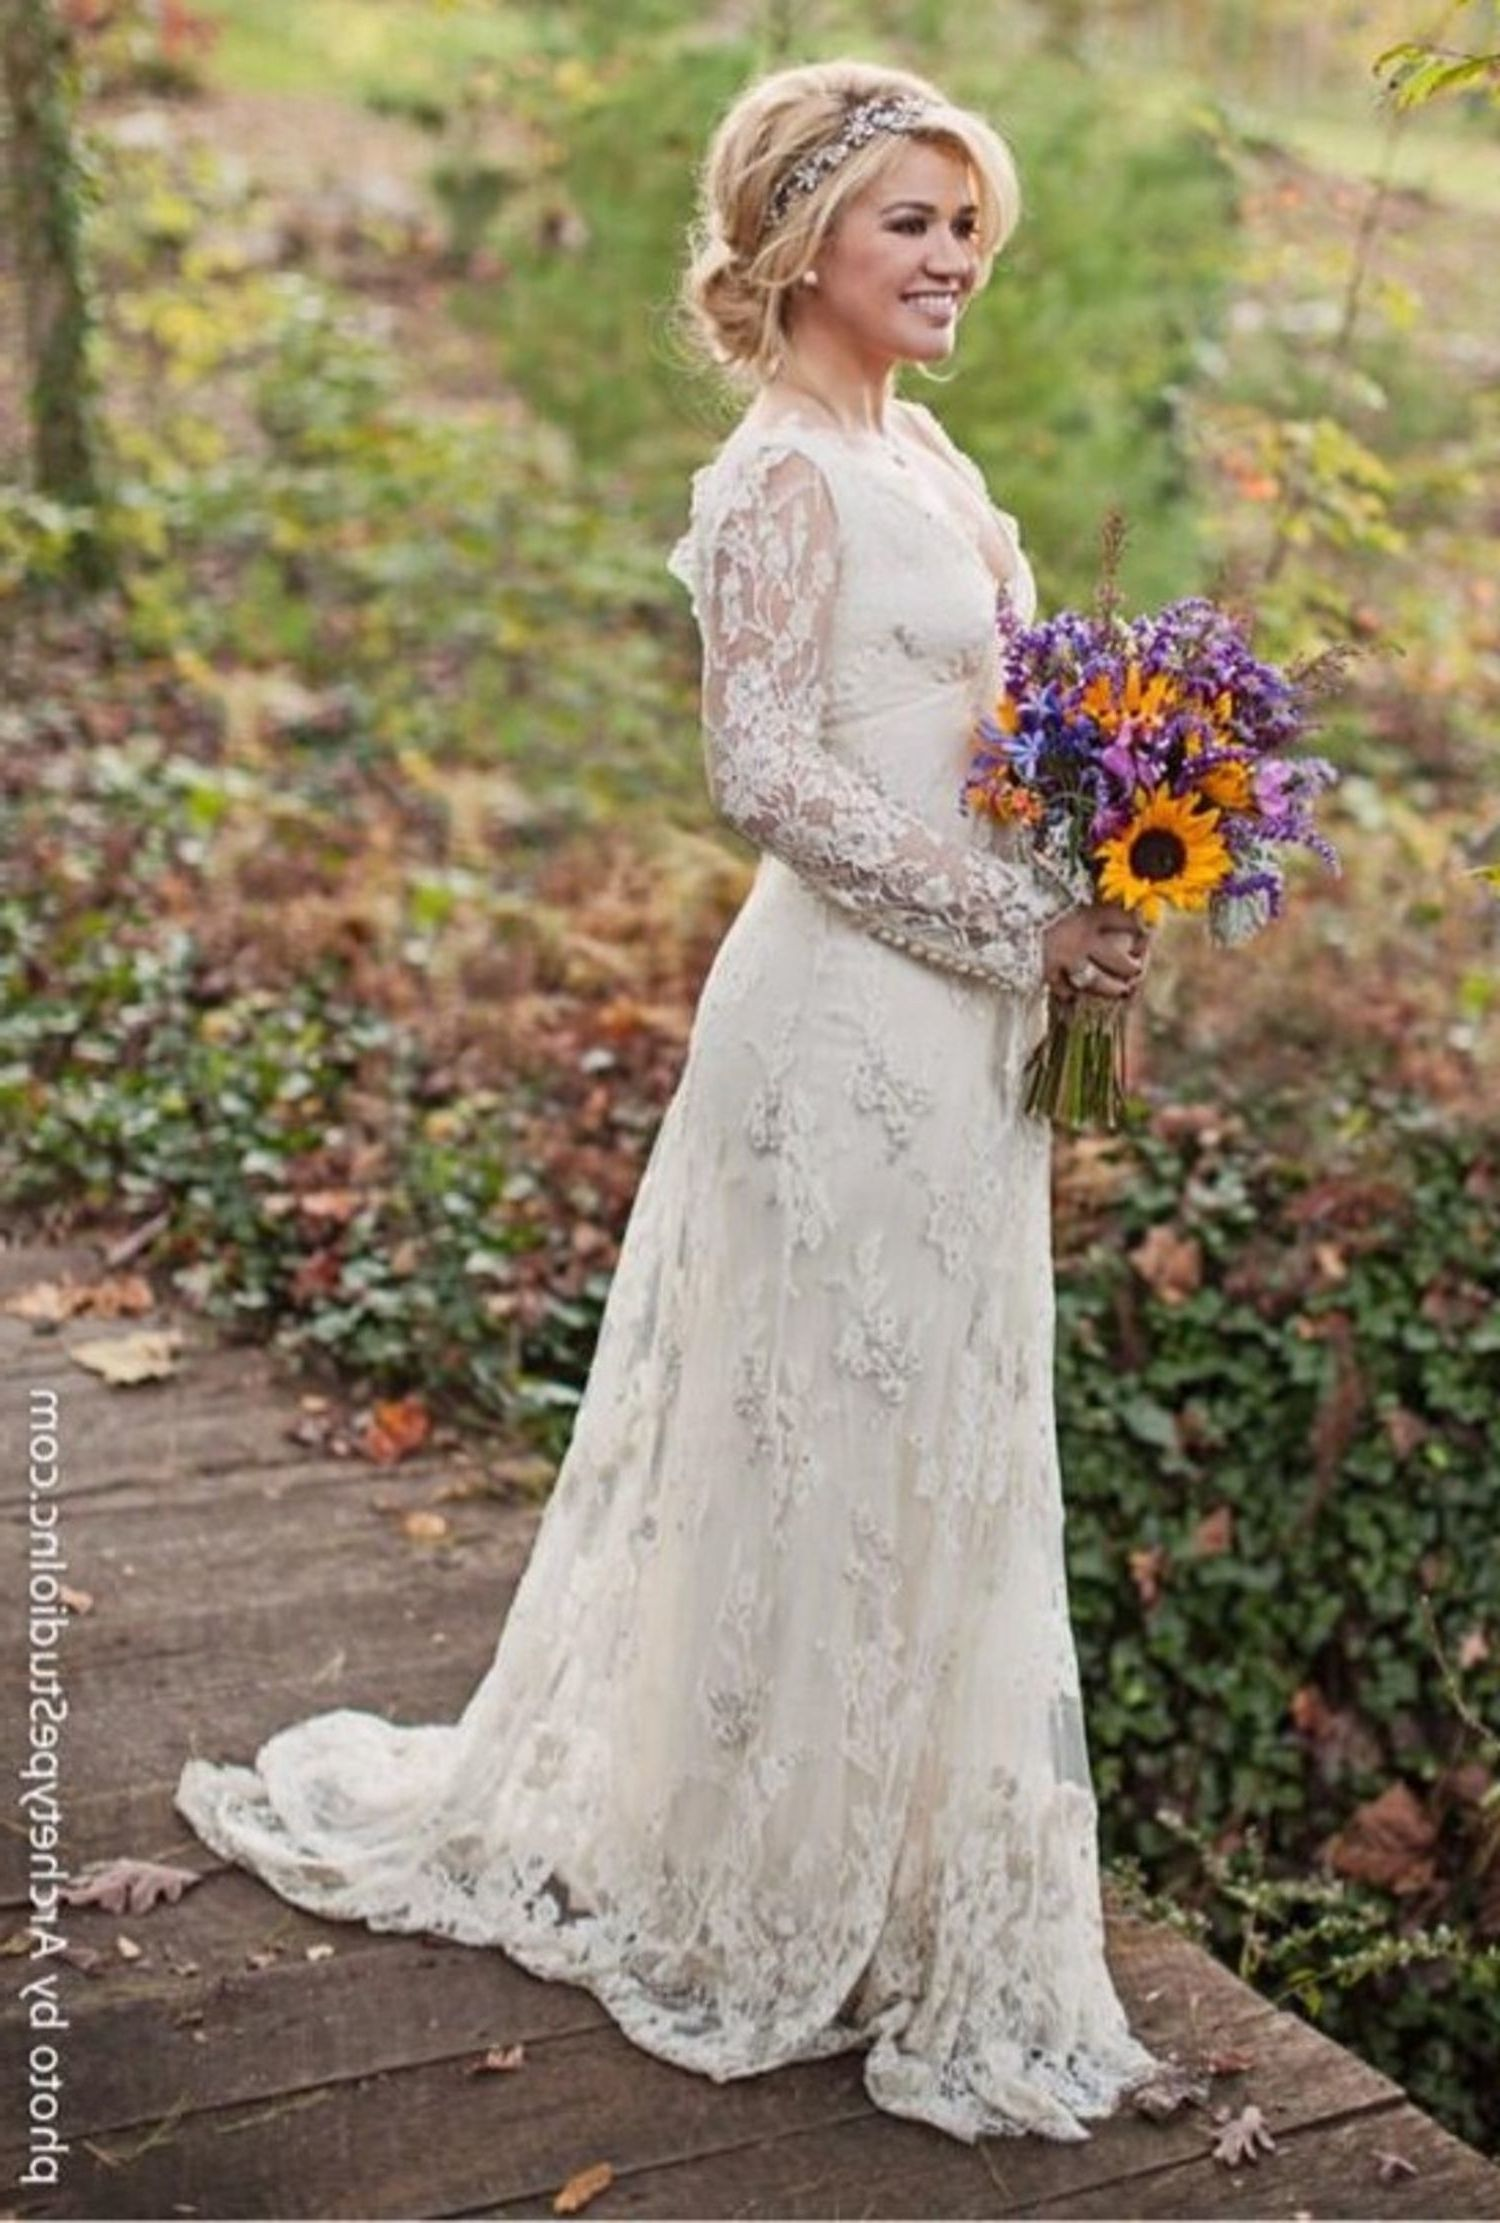 Kelly Clarkson Wedding Dress Photo Country Wedding Dresses Celebrity Wedding Dresses Wedding Dresses